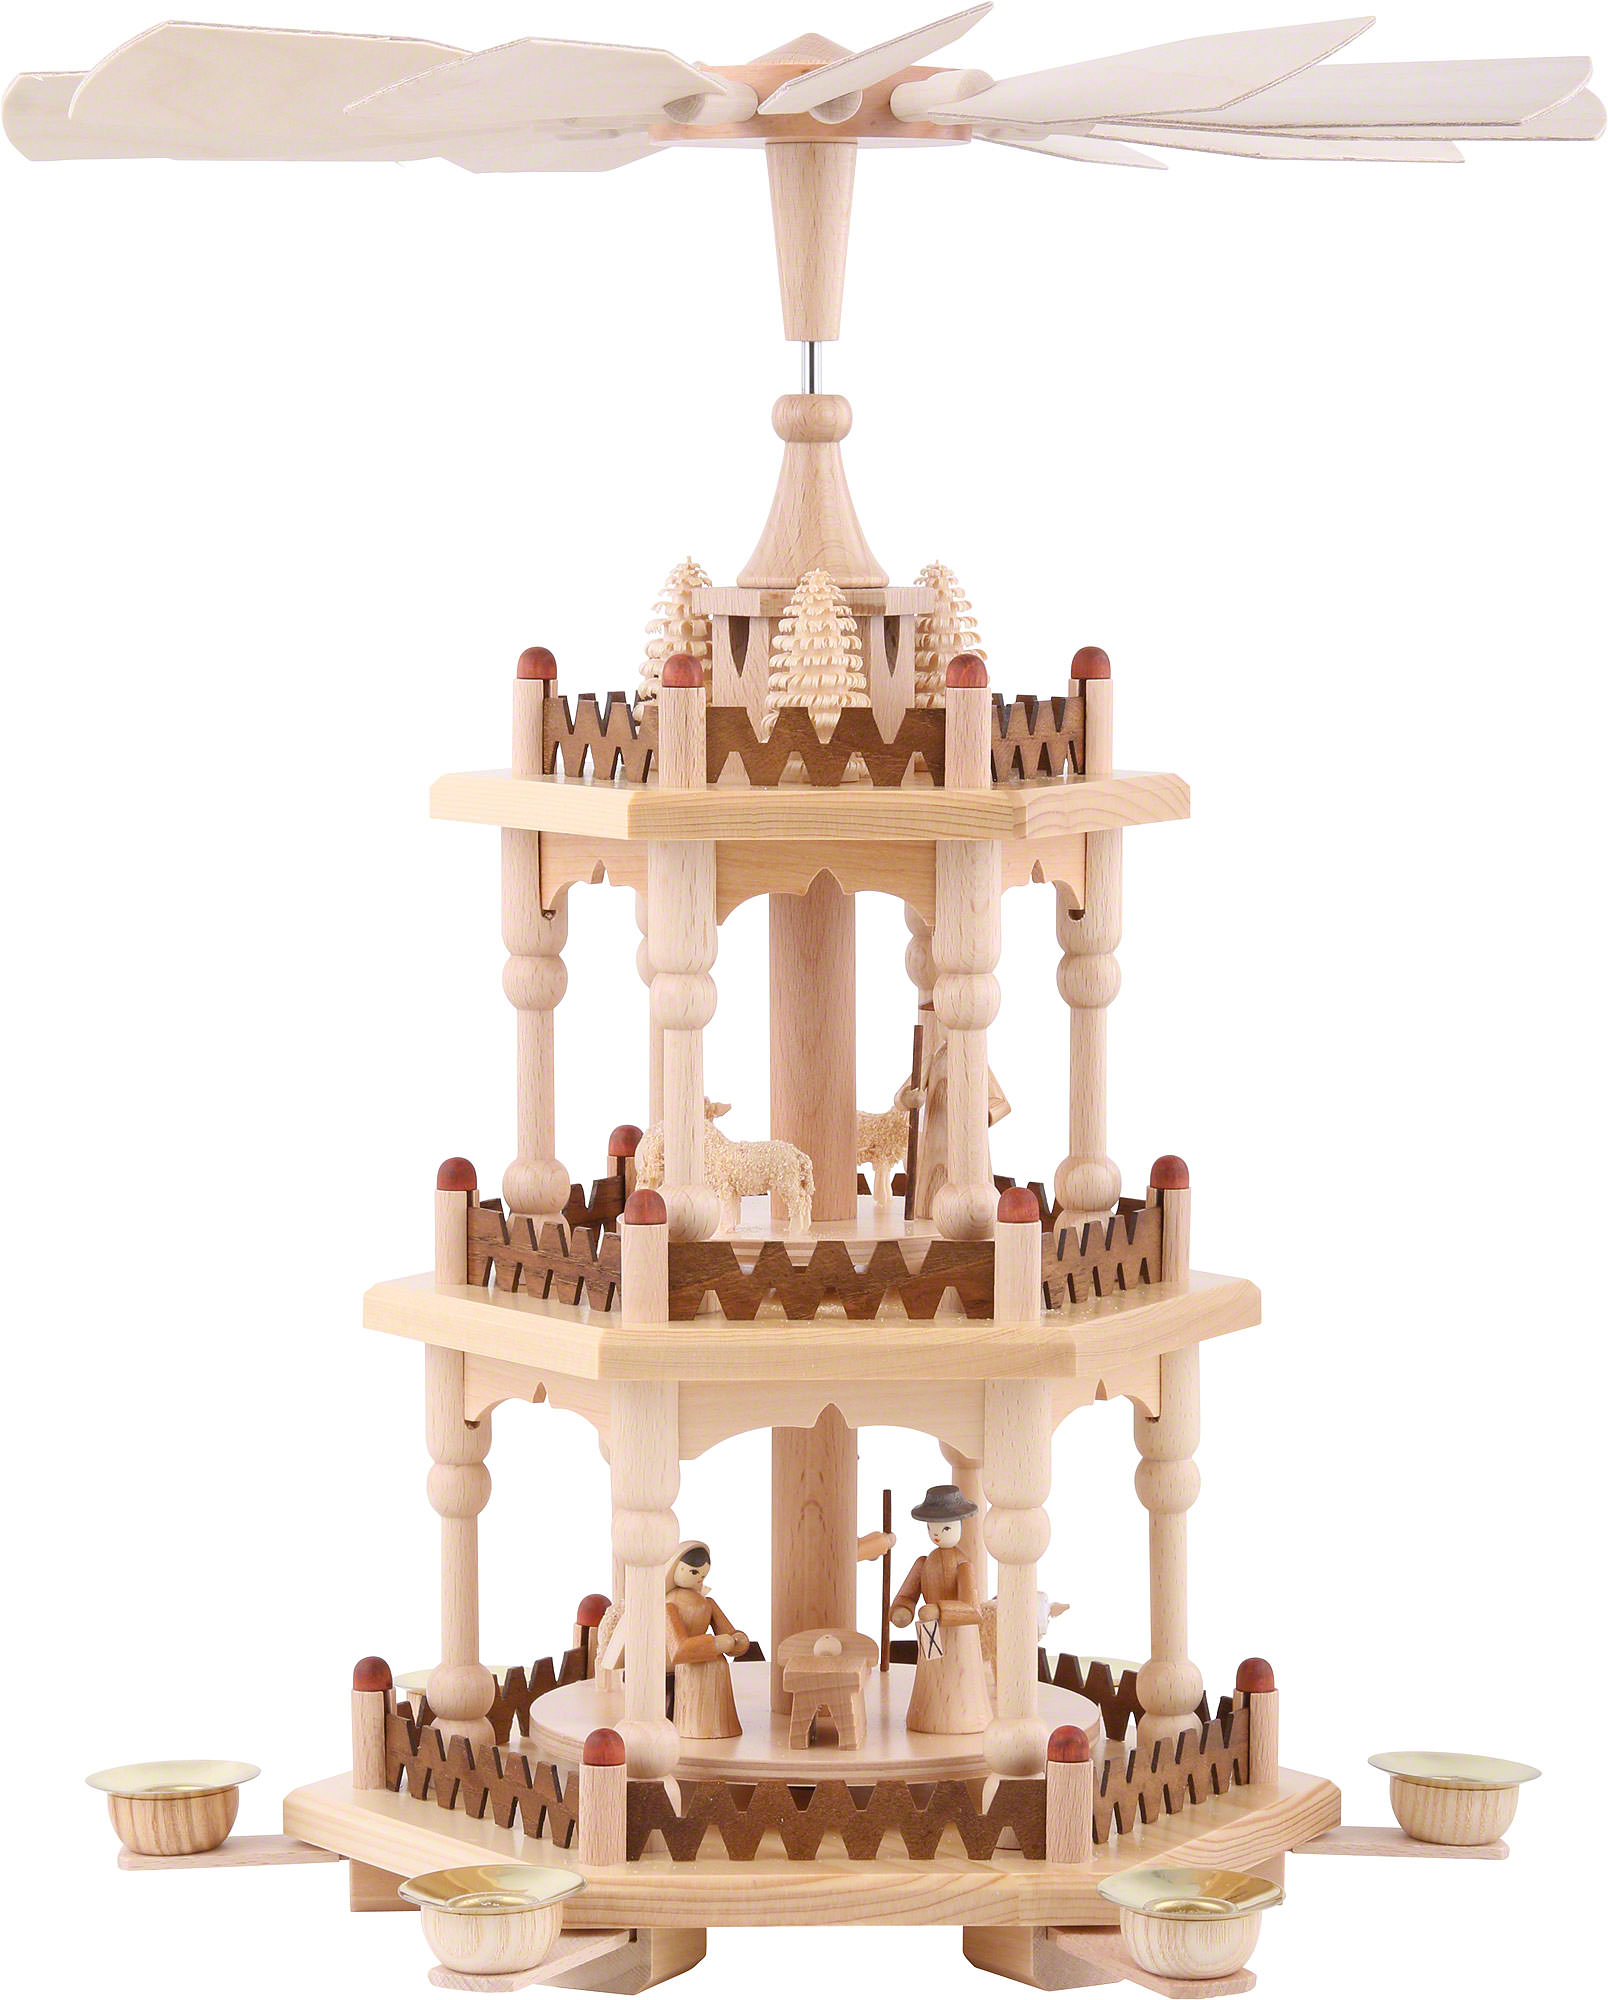 3-Tier Pyramid - Merry Christmas (41 cm/16in) by Theo Lorenz ...